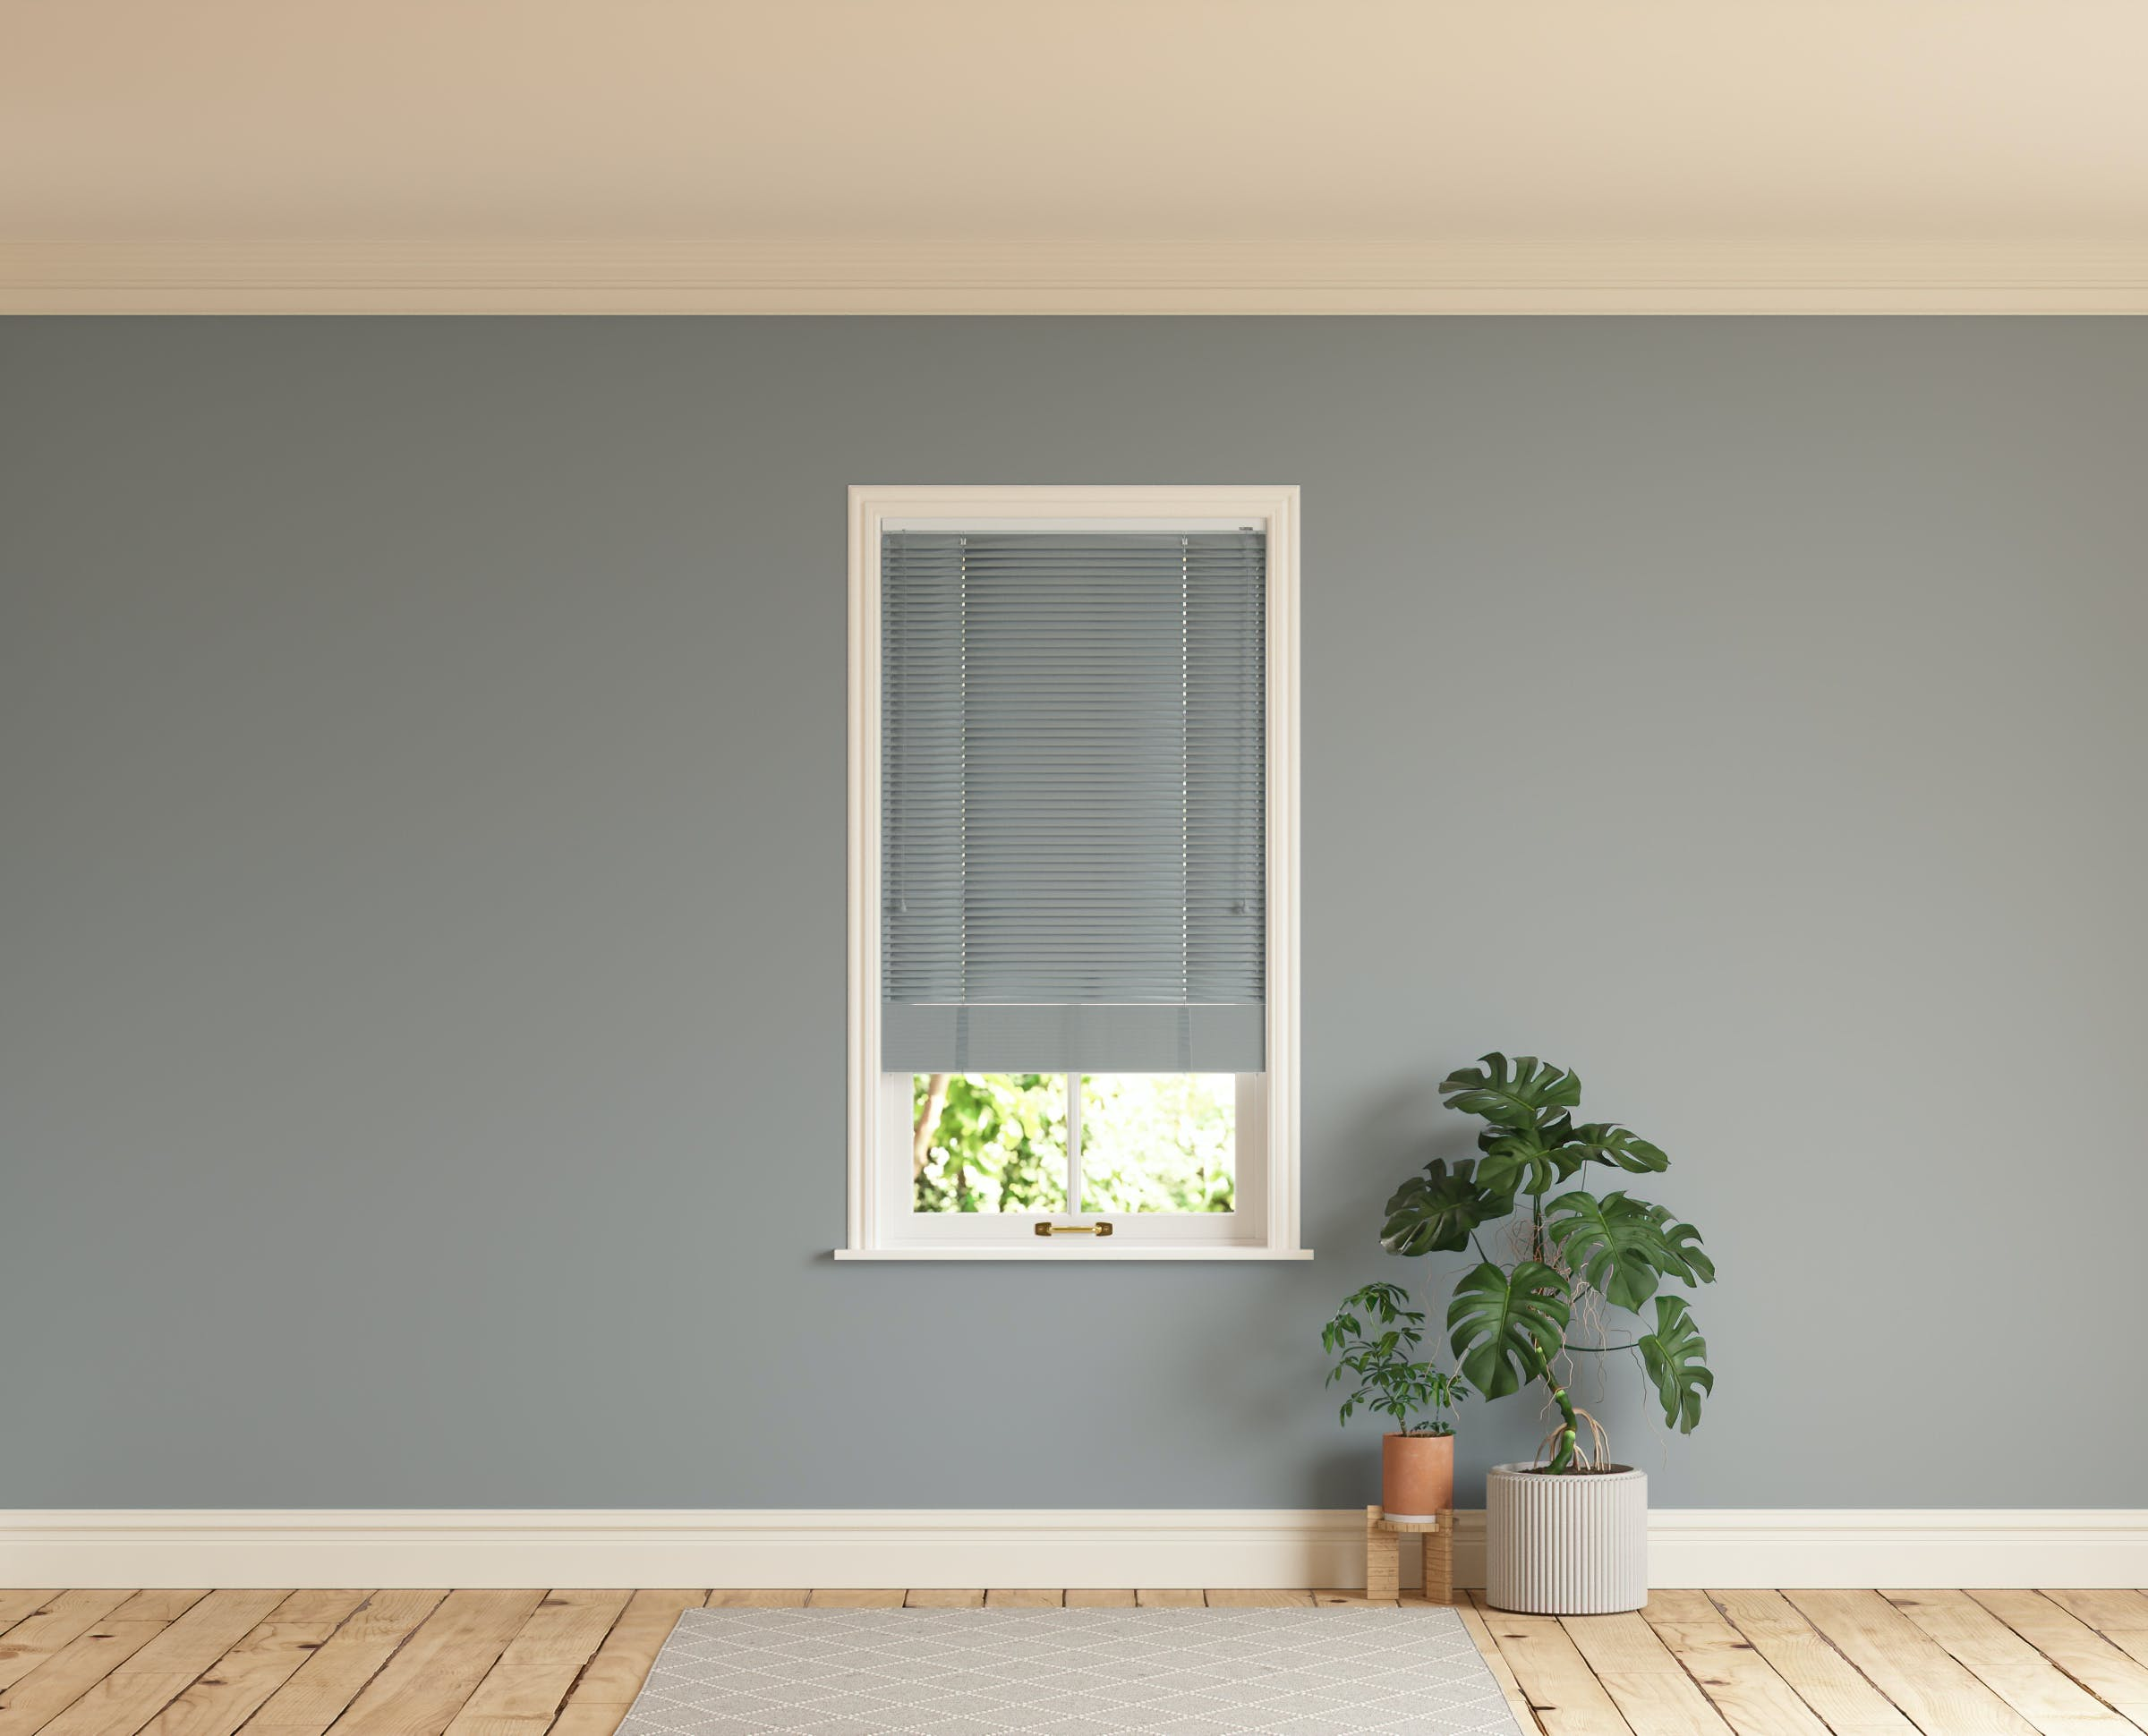 Room with walls painted in Lick Grey 06 and Grey 06 Venetian fine grain blinds